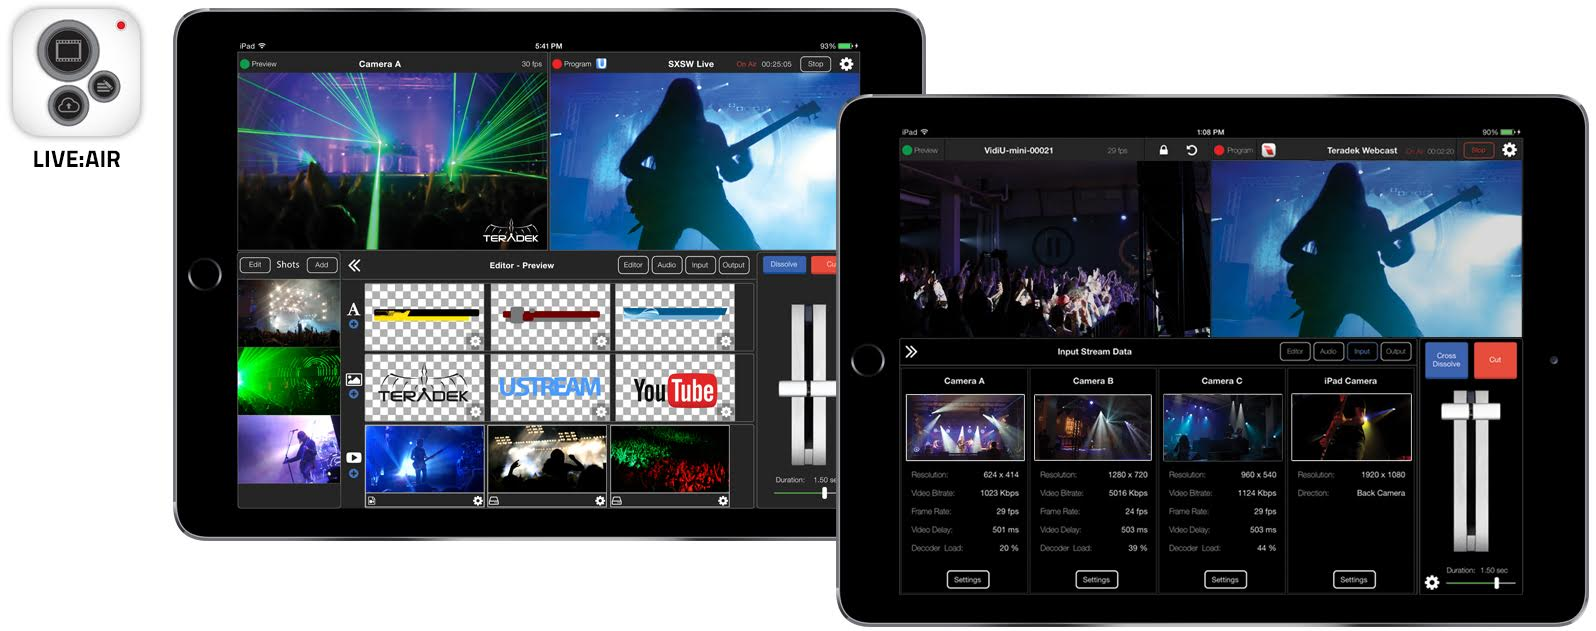 Professional Live Video Broadcasting Production On Your Tablet or Phone Live Air 1